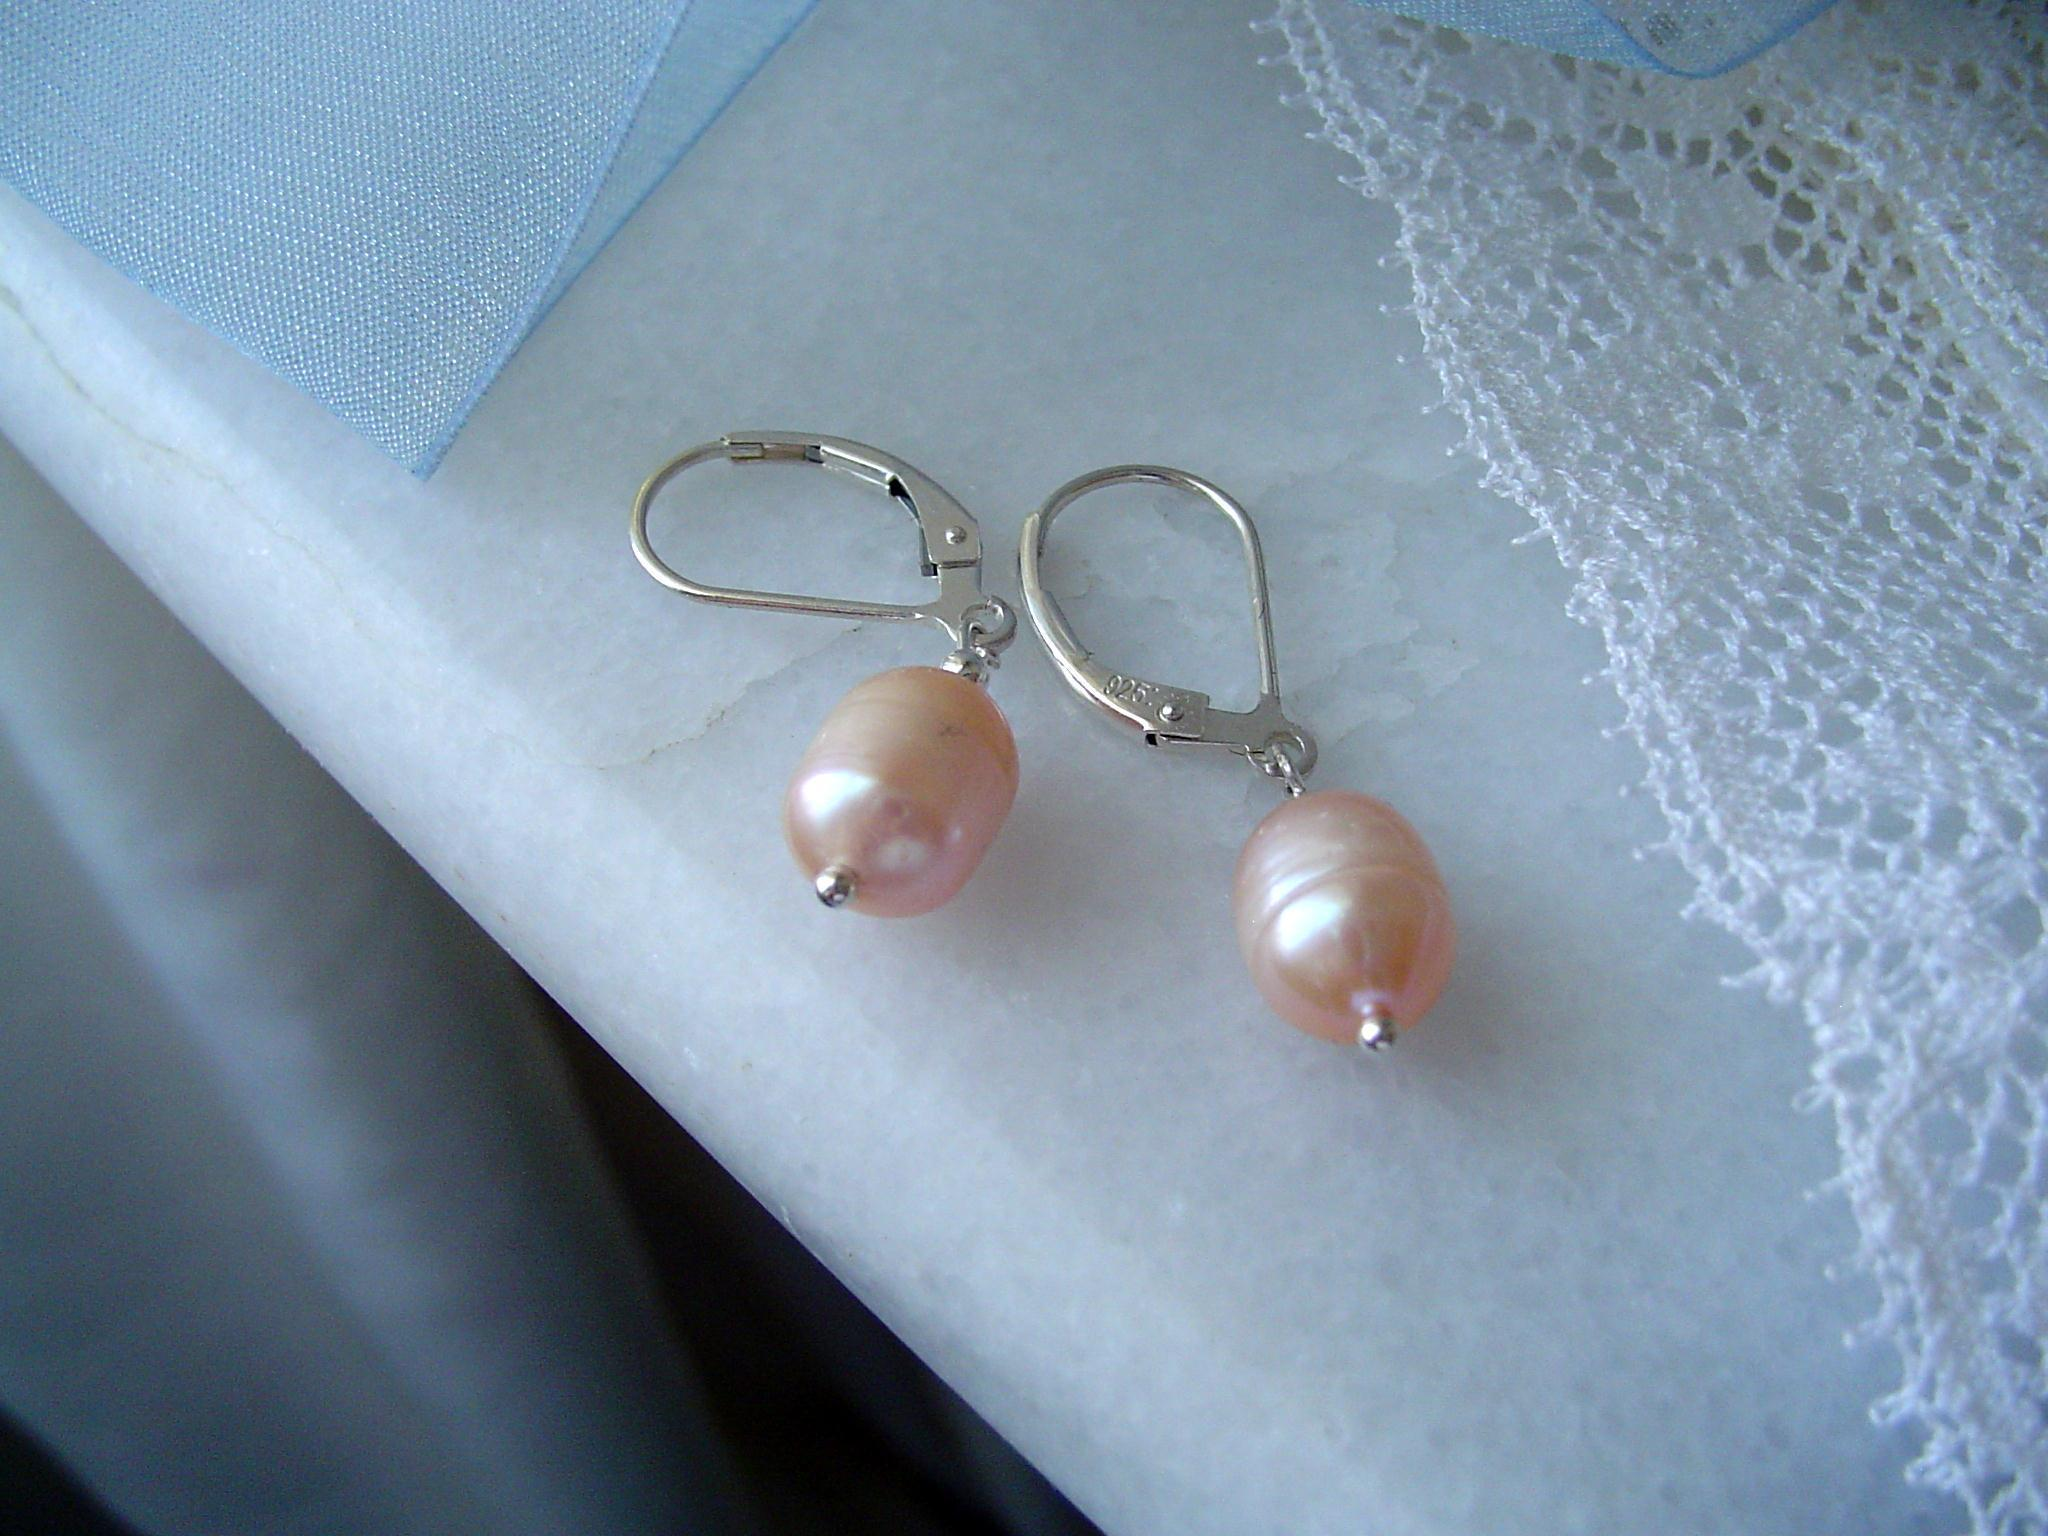 Jewelry, pink, silver, Earrings, Classic, Gift, Peach, Pearl, Feminine, Genuine, Attendant, A little practicality